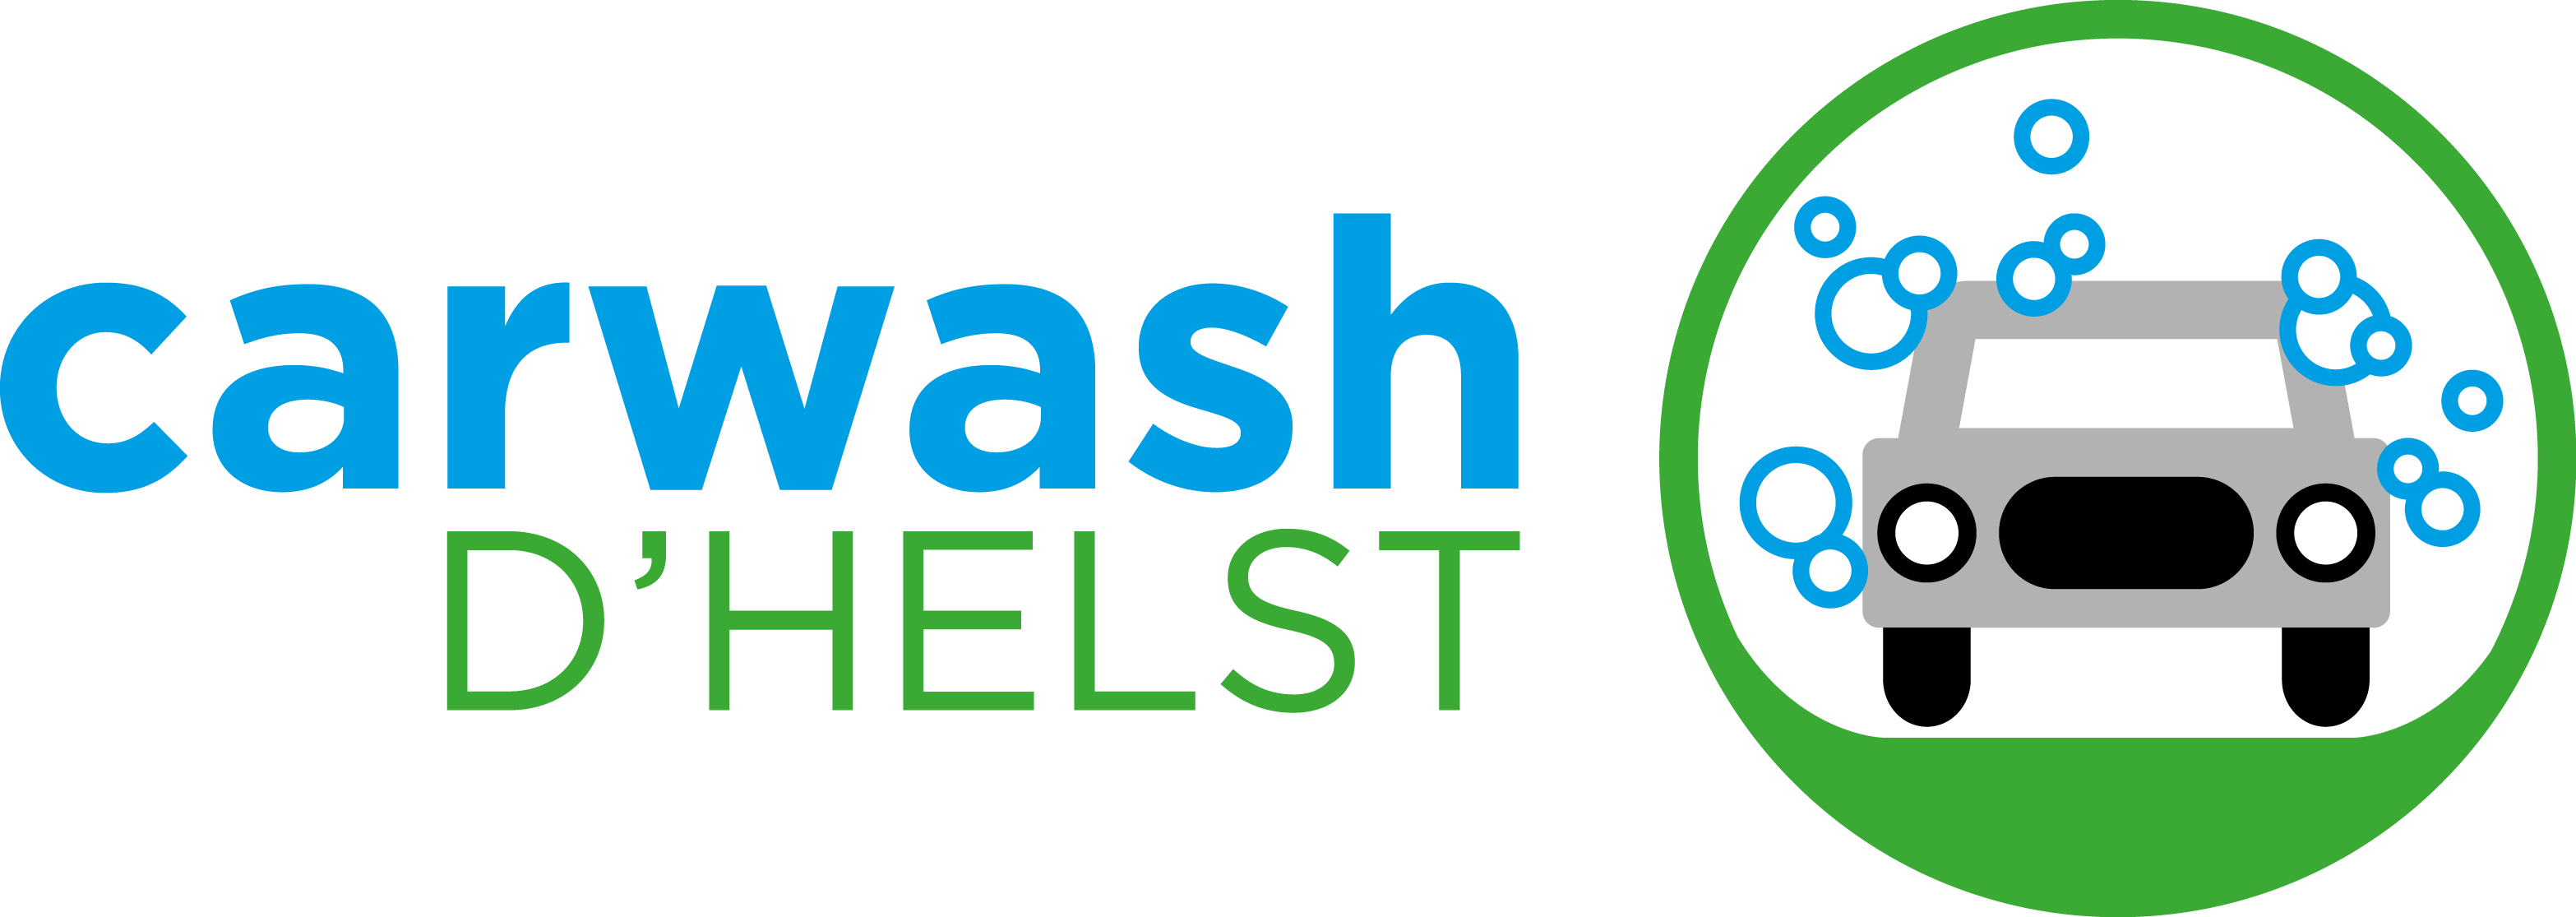 Carwash D'Helst